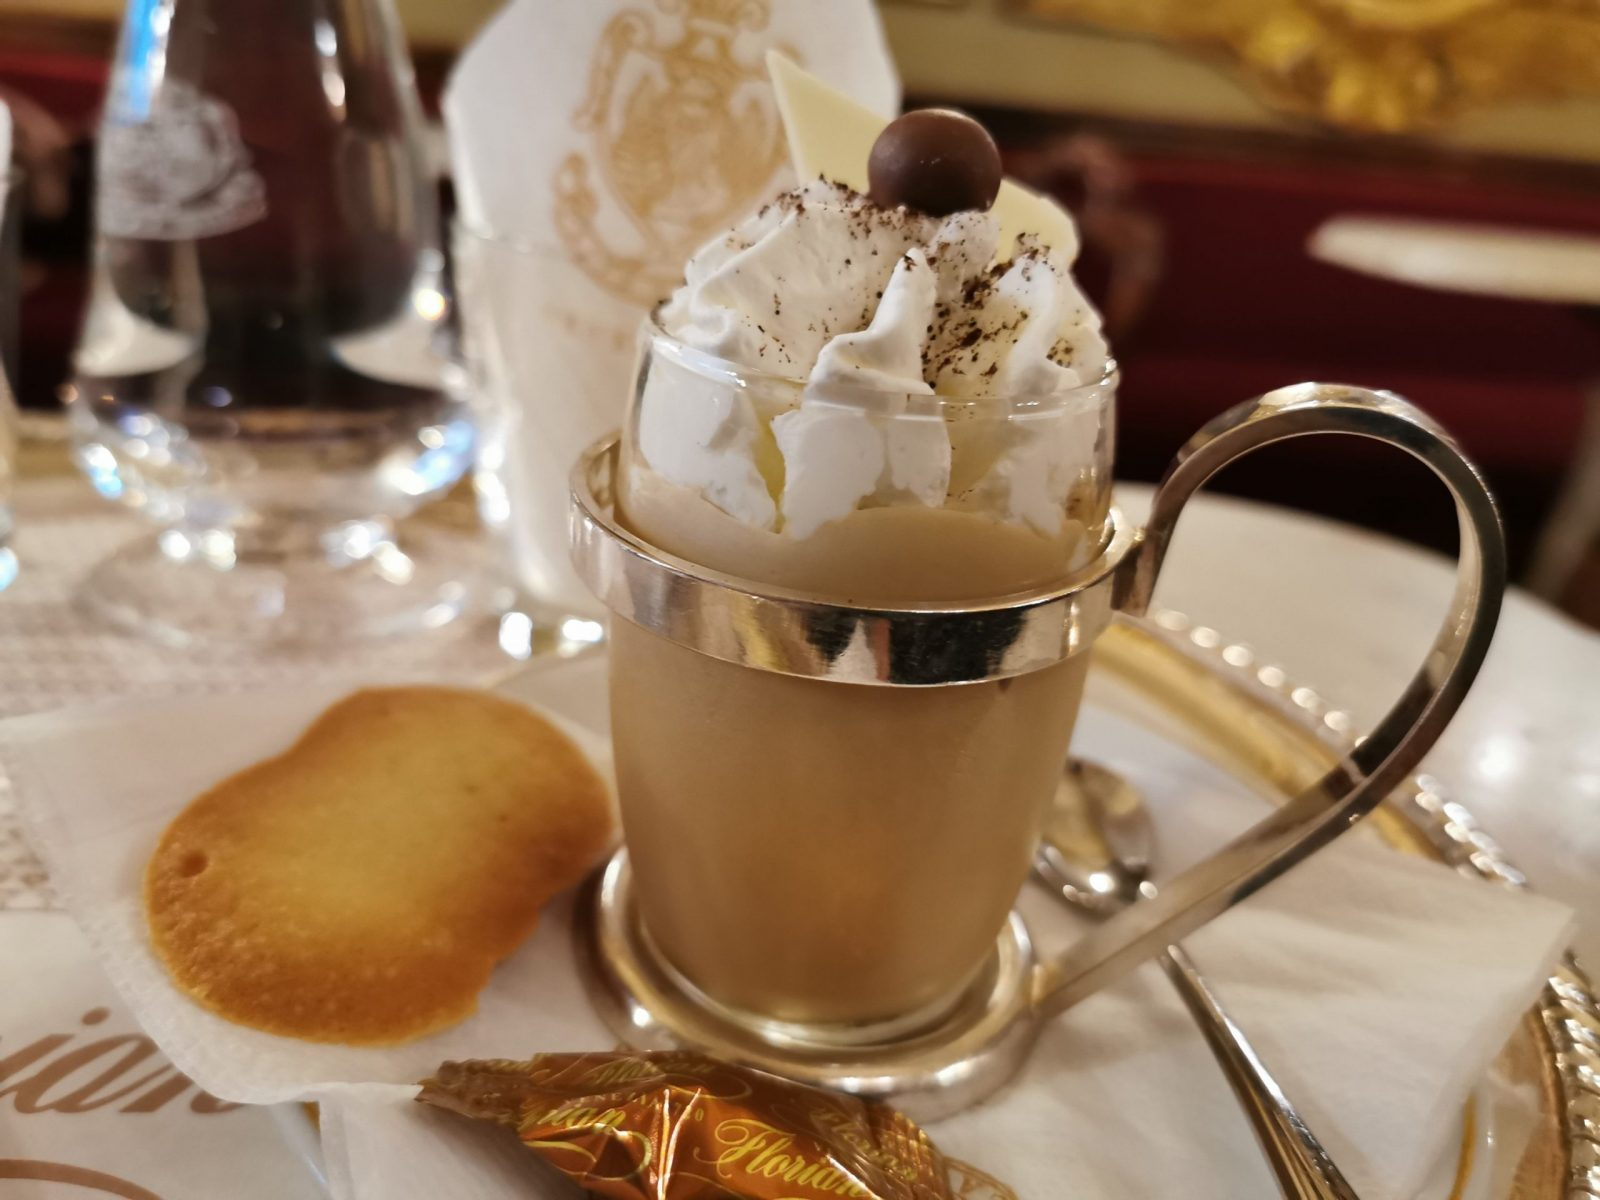 Frozen Florian - Cold coffee cream with whipped cream, €13.50